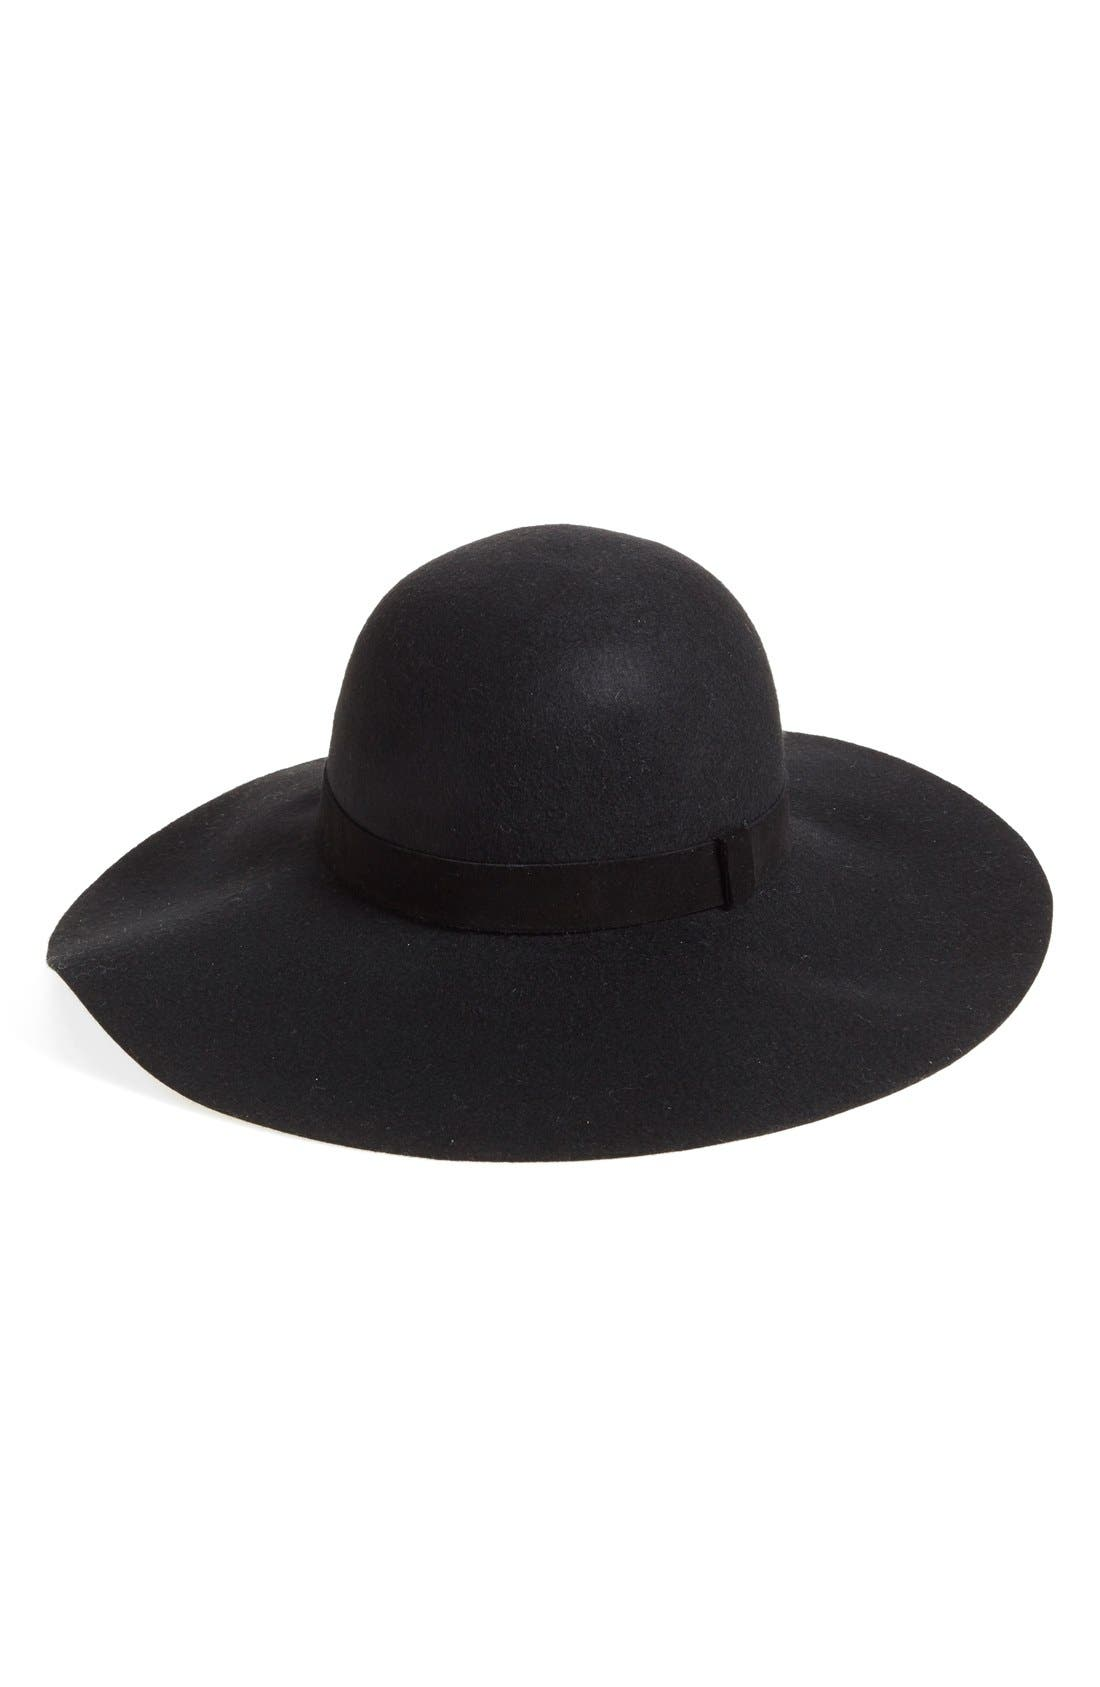 Suede Trim Floppy Wool Hat,                         Main,                         color, 001